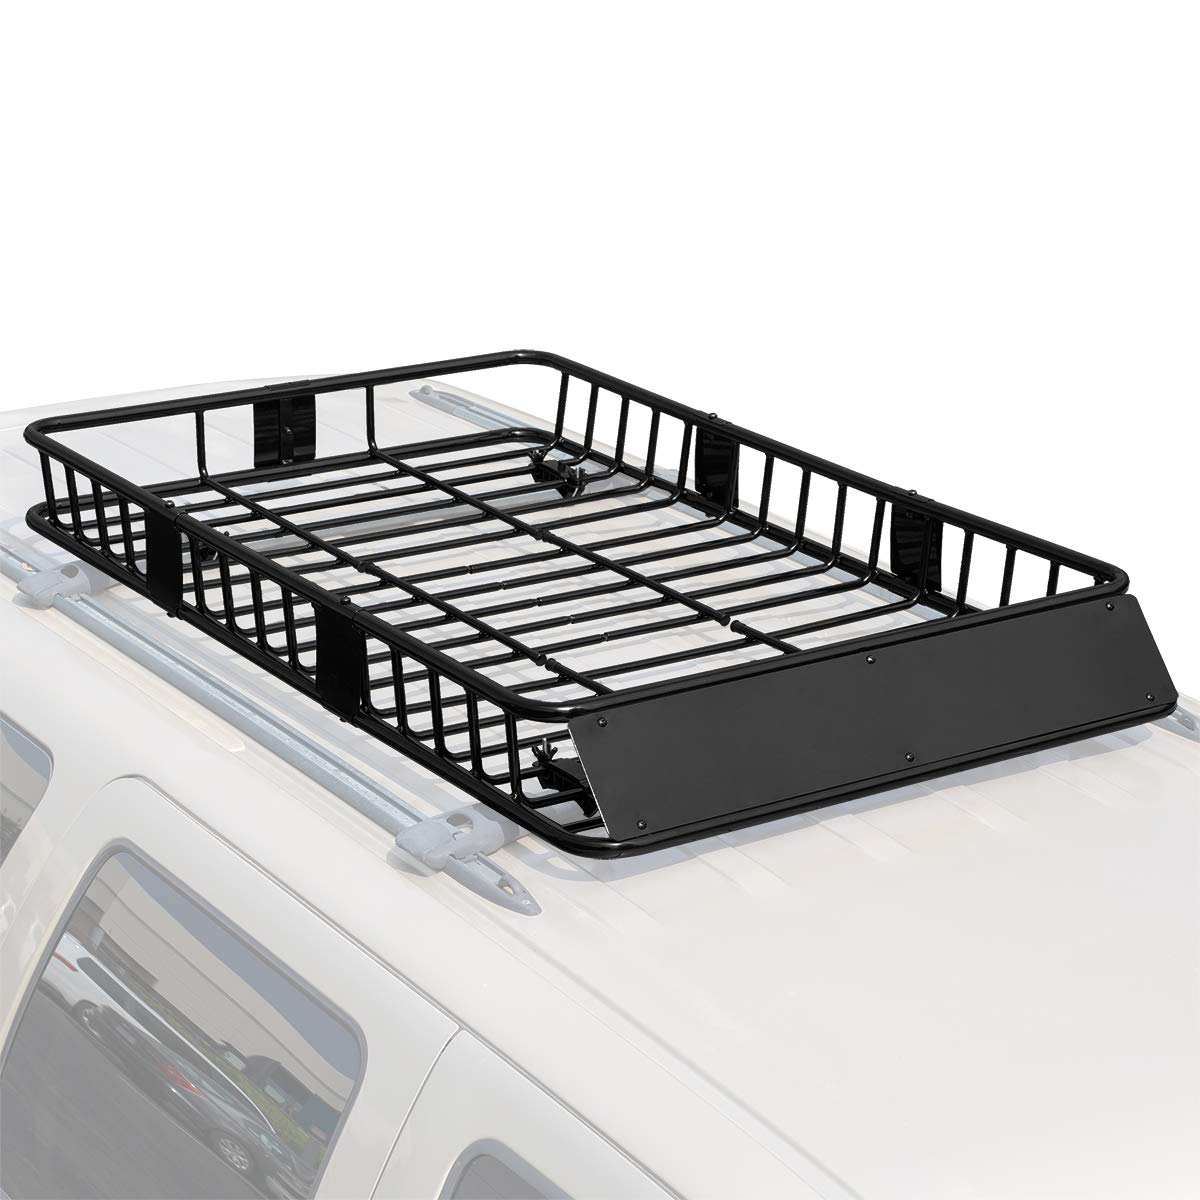 64 Universal Roof Rack Cargo Carrier w//Extension Luggage Hold Basket SUV